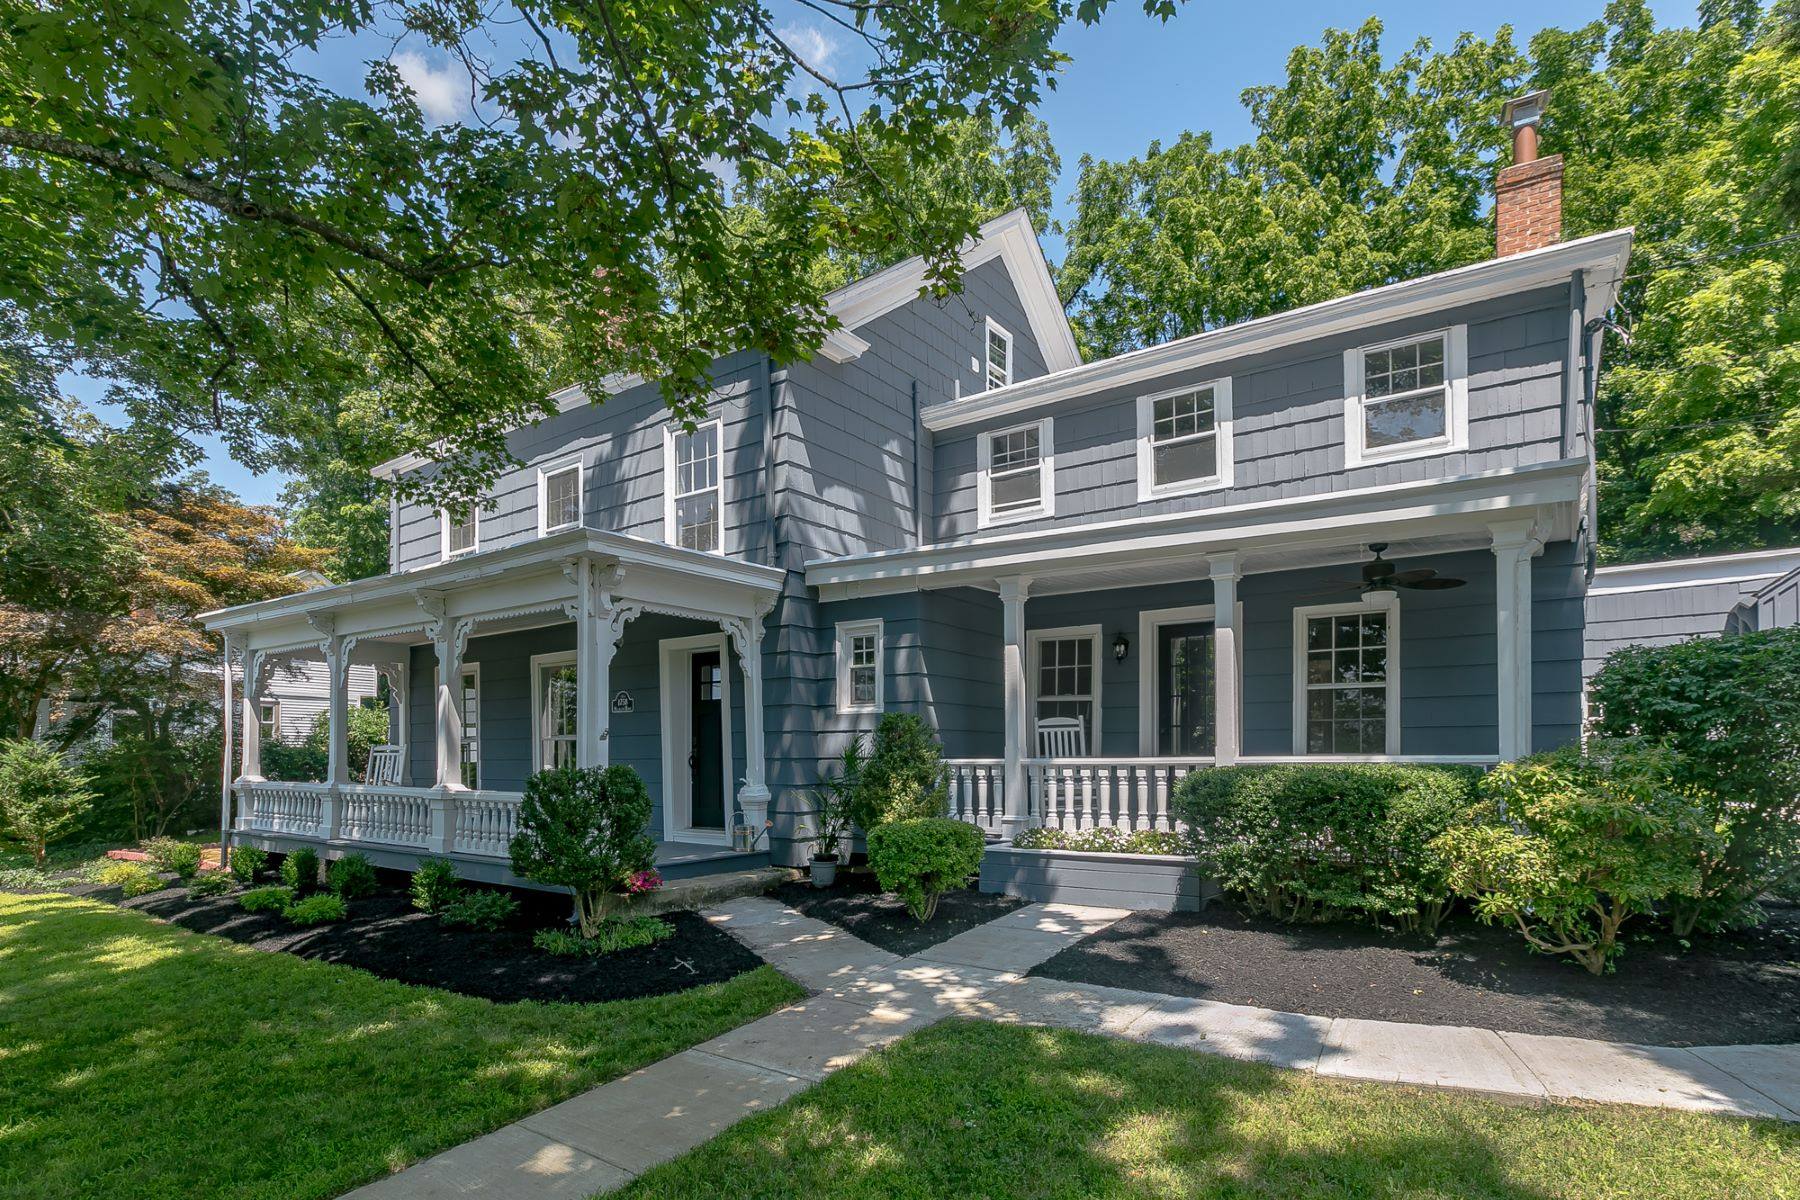 Single Family Homes for Sale at Charming Colonial 48 Sunnyslope Long Hill Township, New Jersey 07946 United States